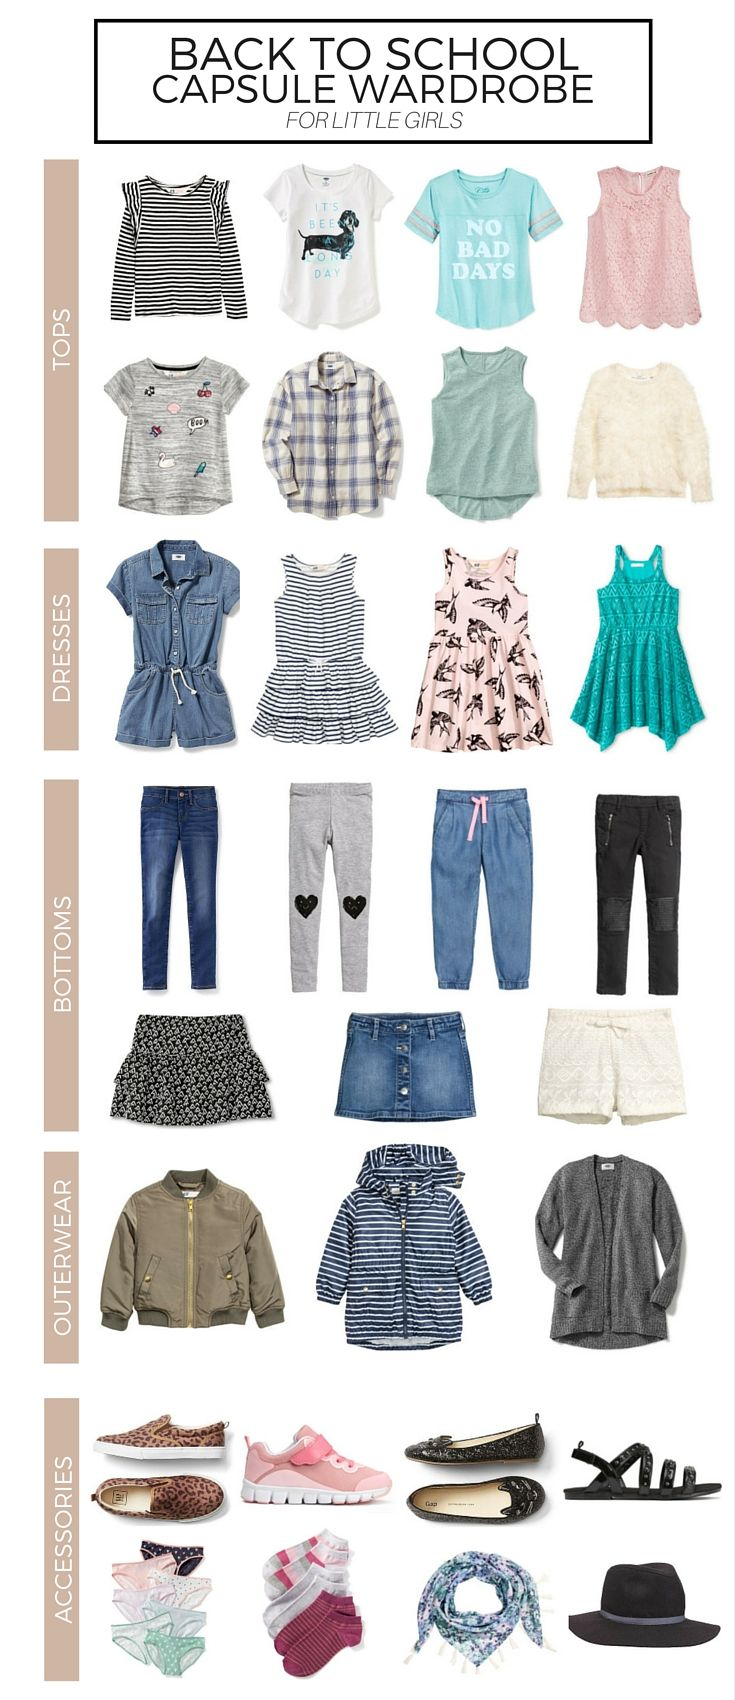 BACK TO SCHOOL CAPSULE WARDROBES FOR KIDS